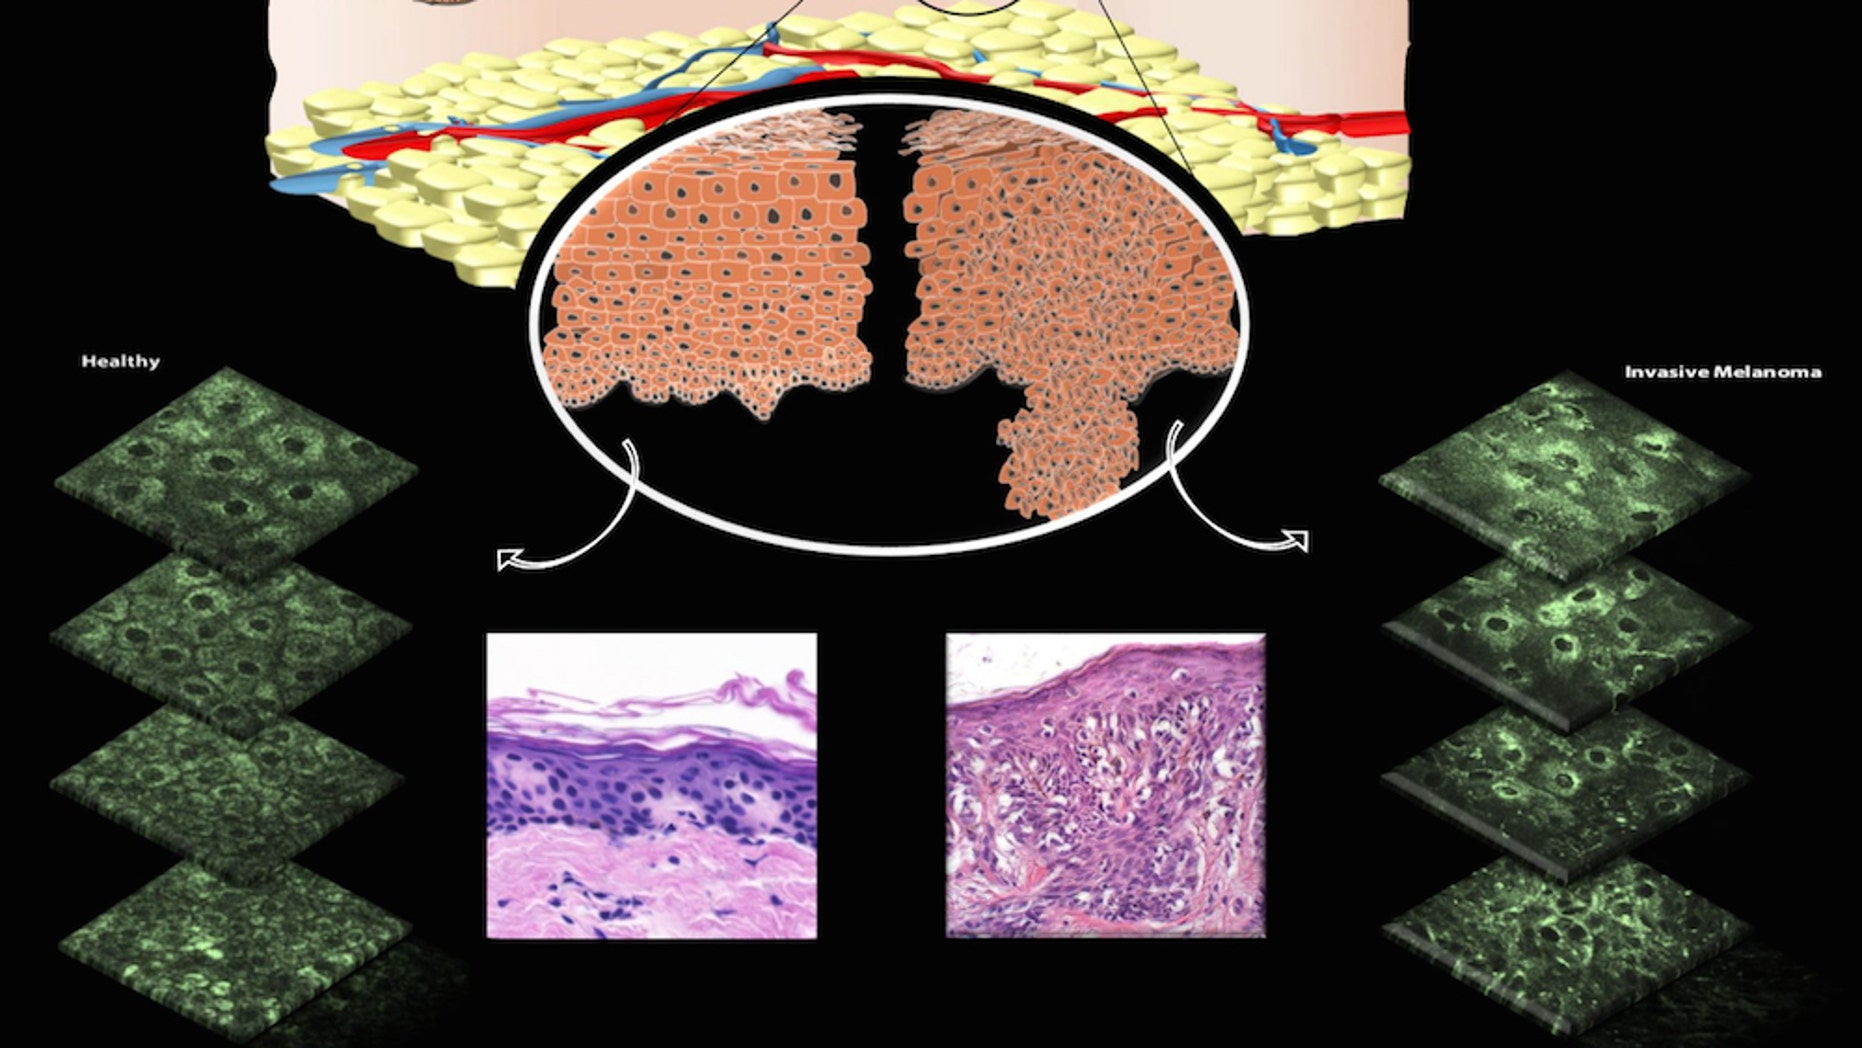 The top illustration shows both healthy (left) and unhealthy (right) cells, along with images taken of skin that's healthy (lower left) and skin with an invasive melanoma lesion (lower right).